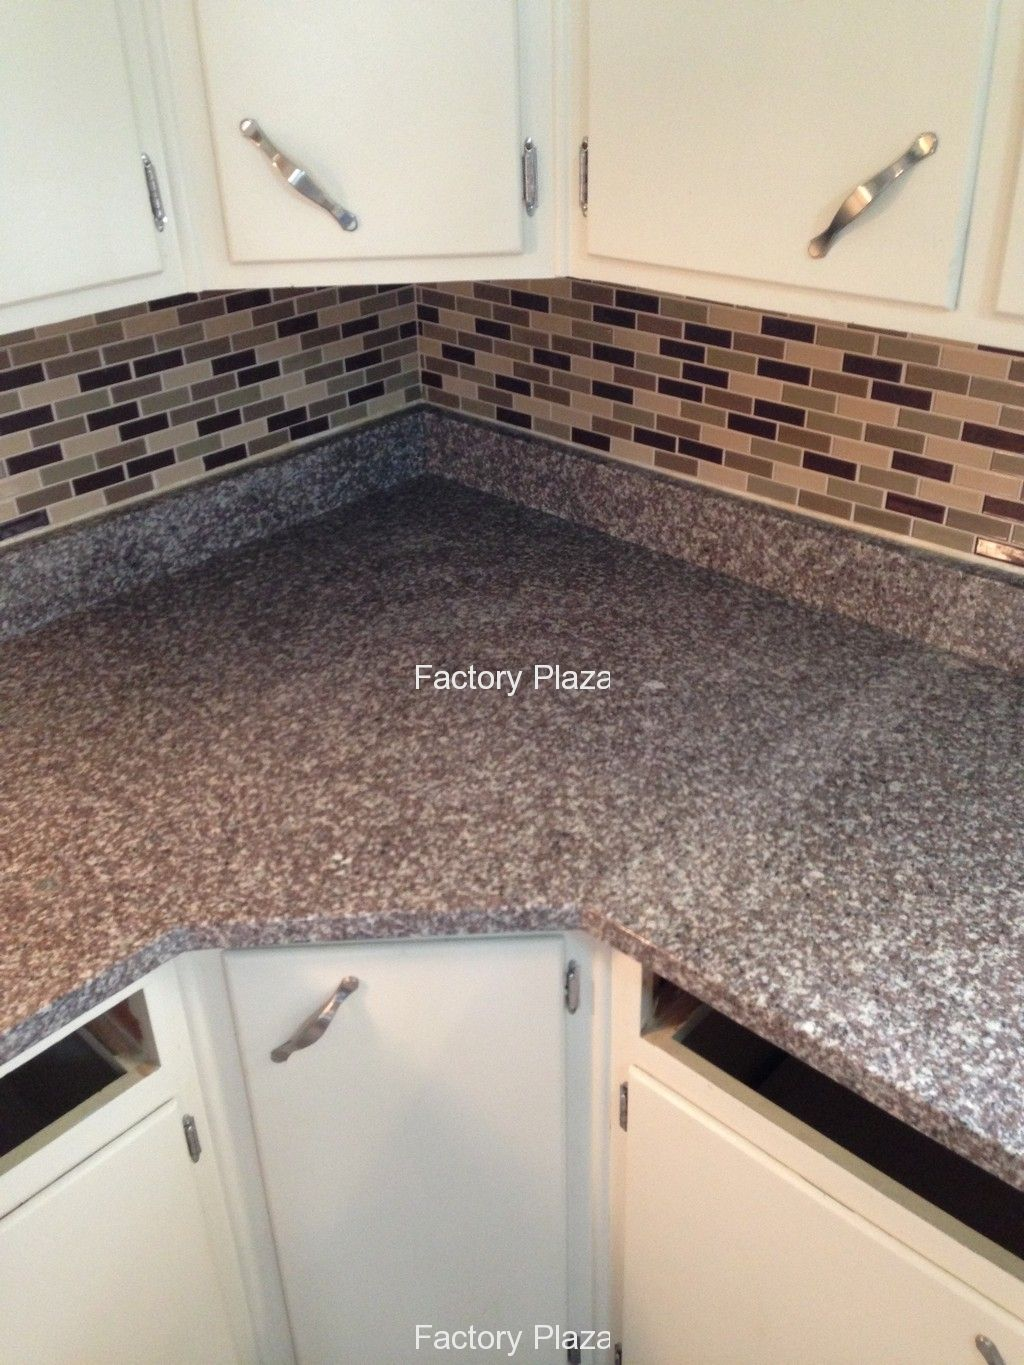 Laminate Kitchen Backsplash Bainbrook Brown Granite Countertops In Kitchen Bainbrook